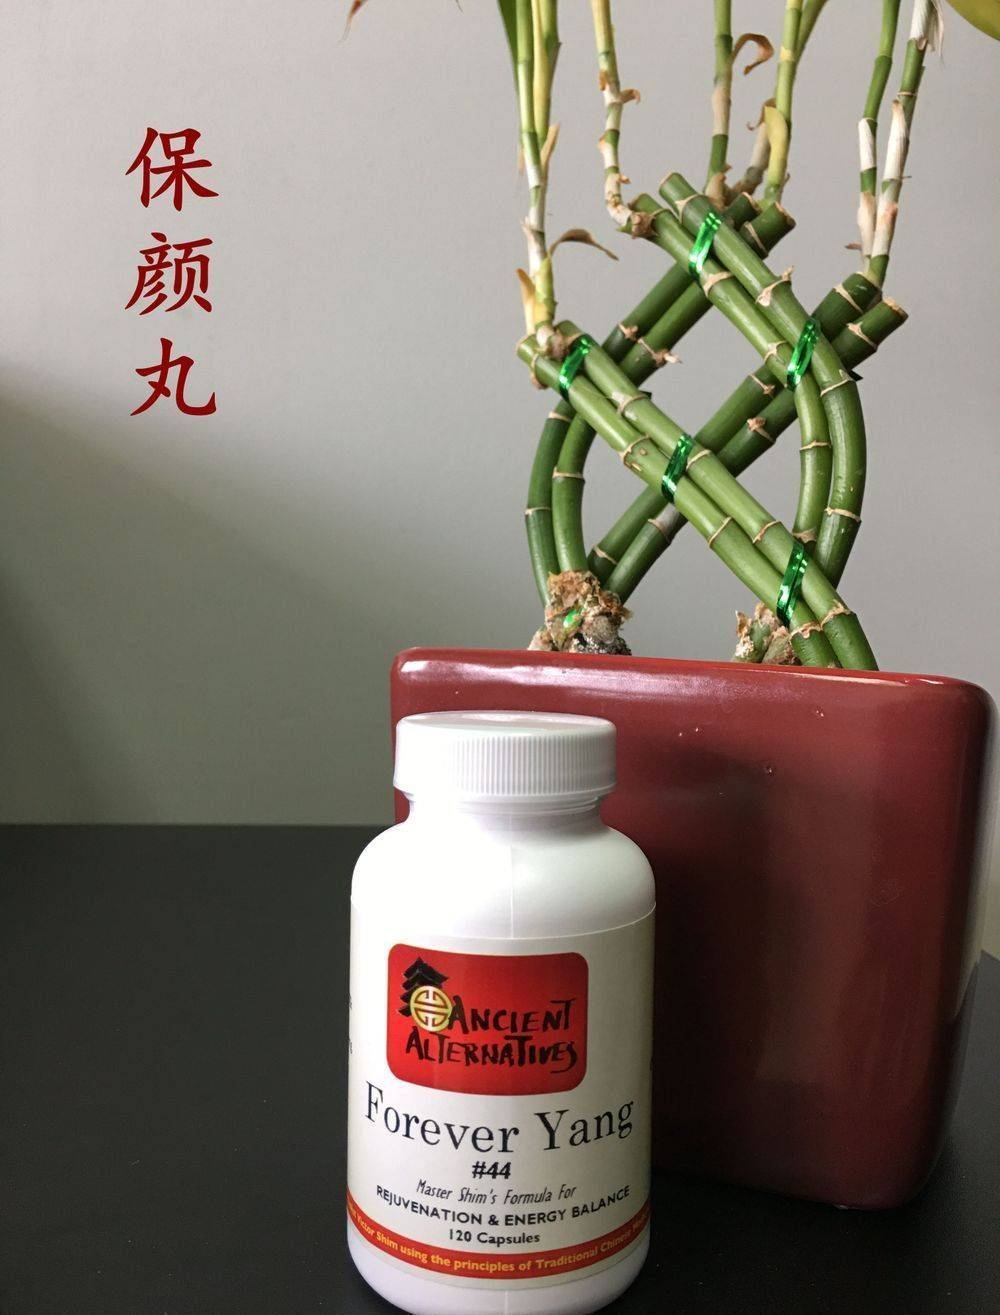 Tonify the blood and boost energy; activate cell rejuvenation; aid digestion; normalize blood pressure. (120 capsules)